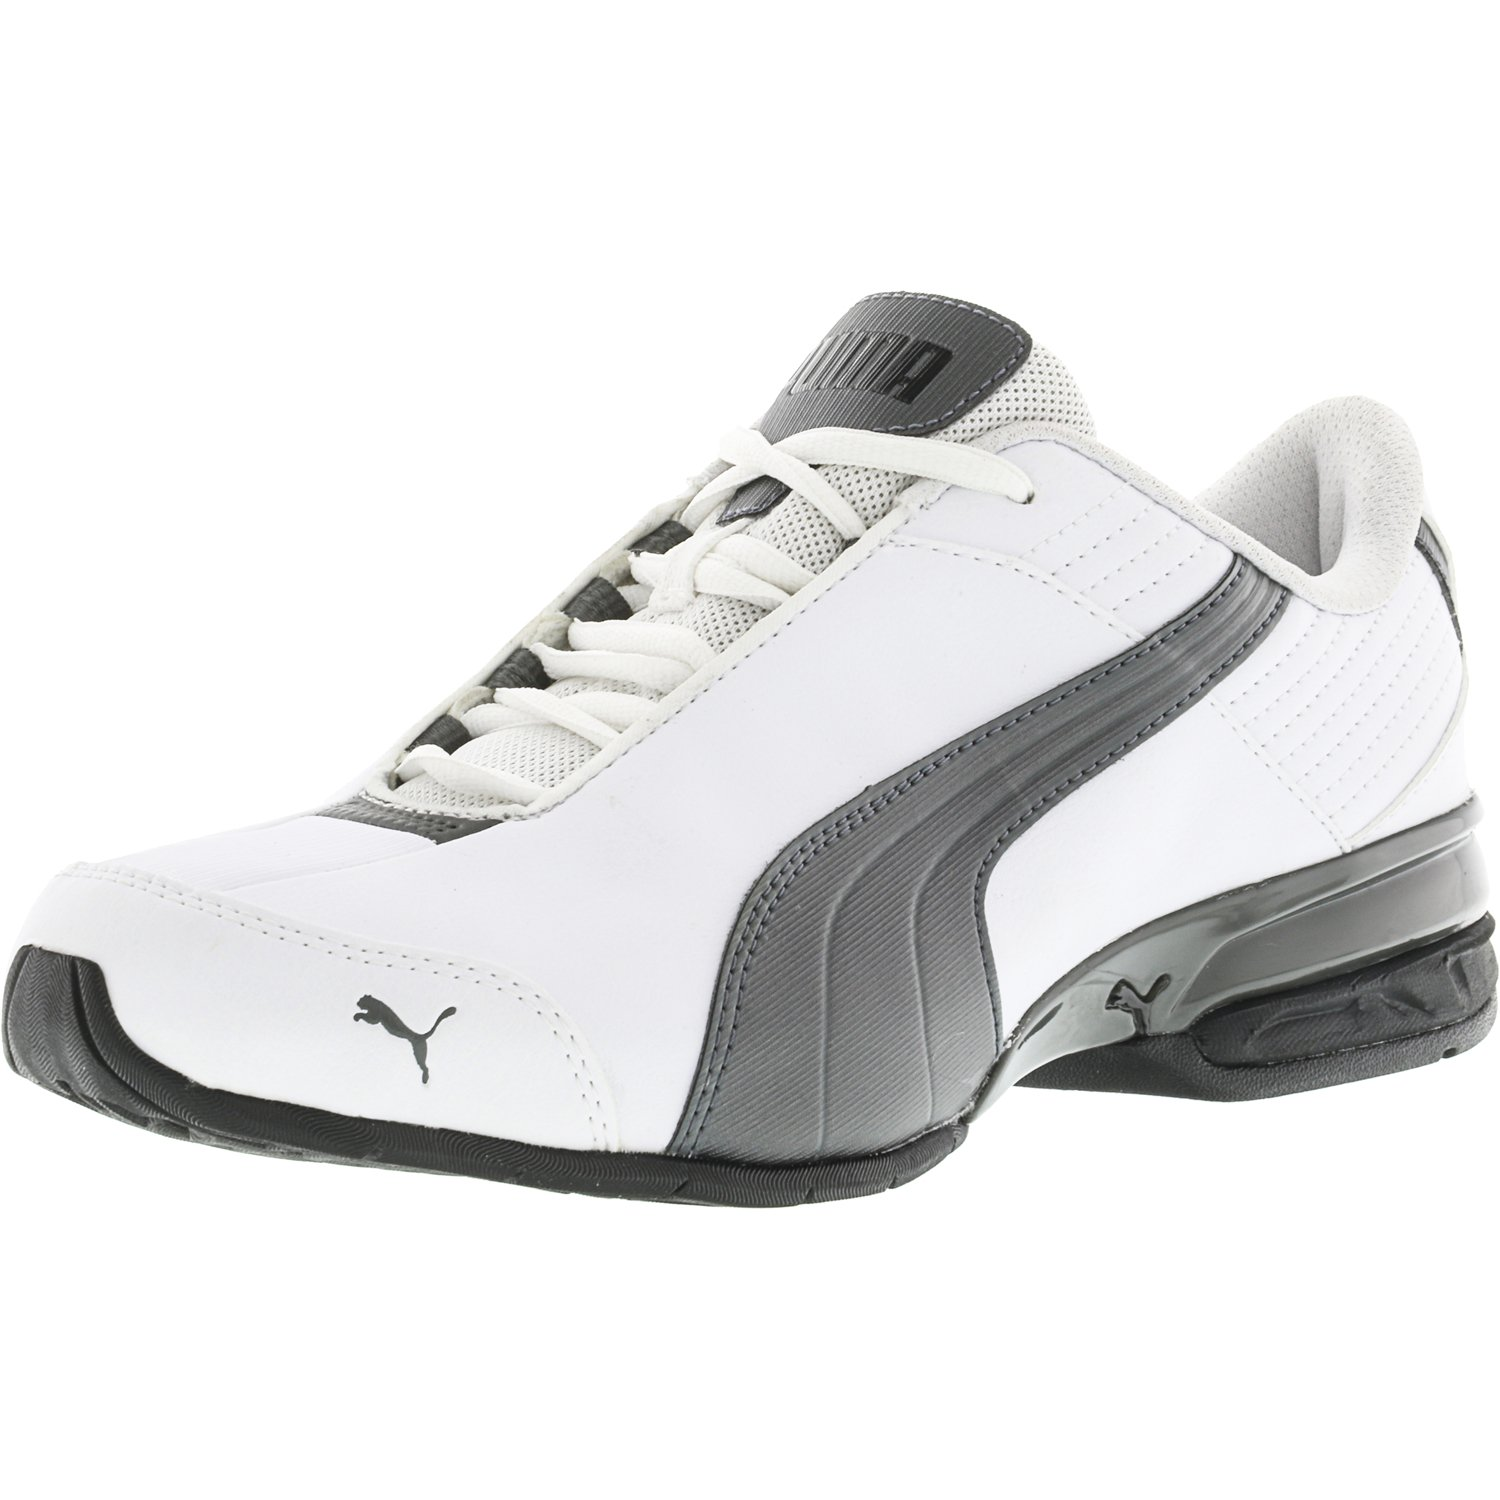 Puma Men's Super Elevate White / Pewter Black Low Top Leather Running Shoe - 8.5M